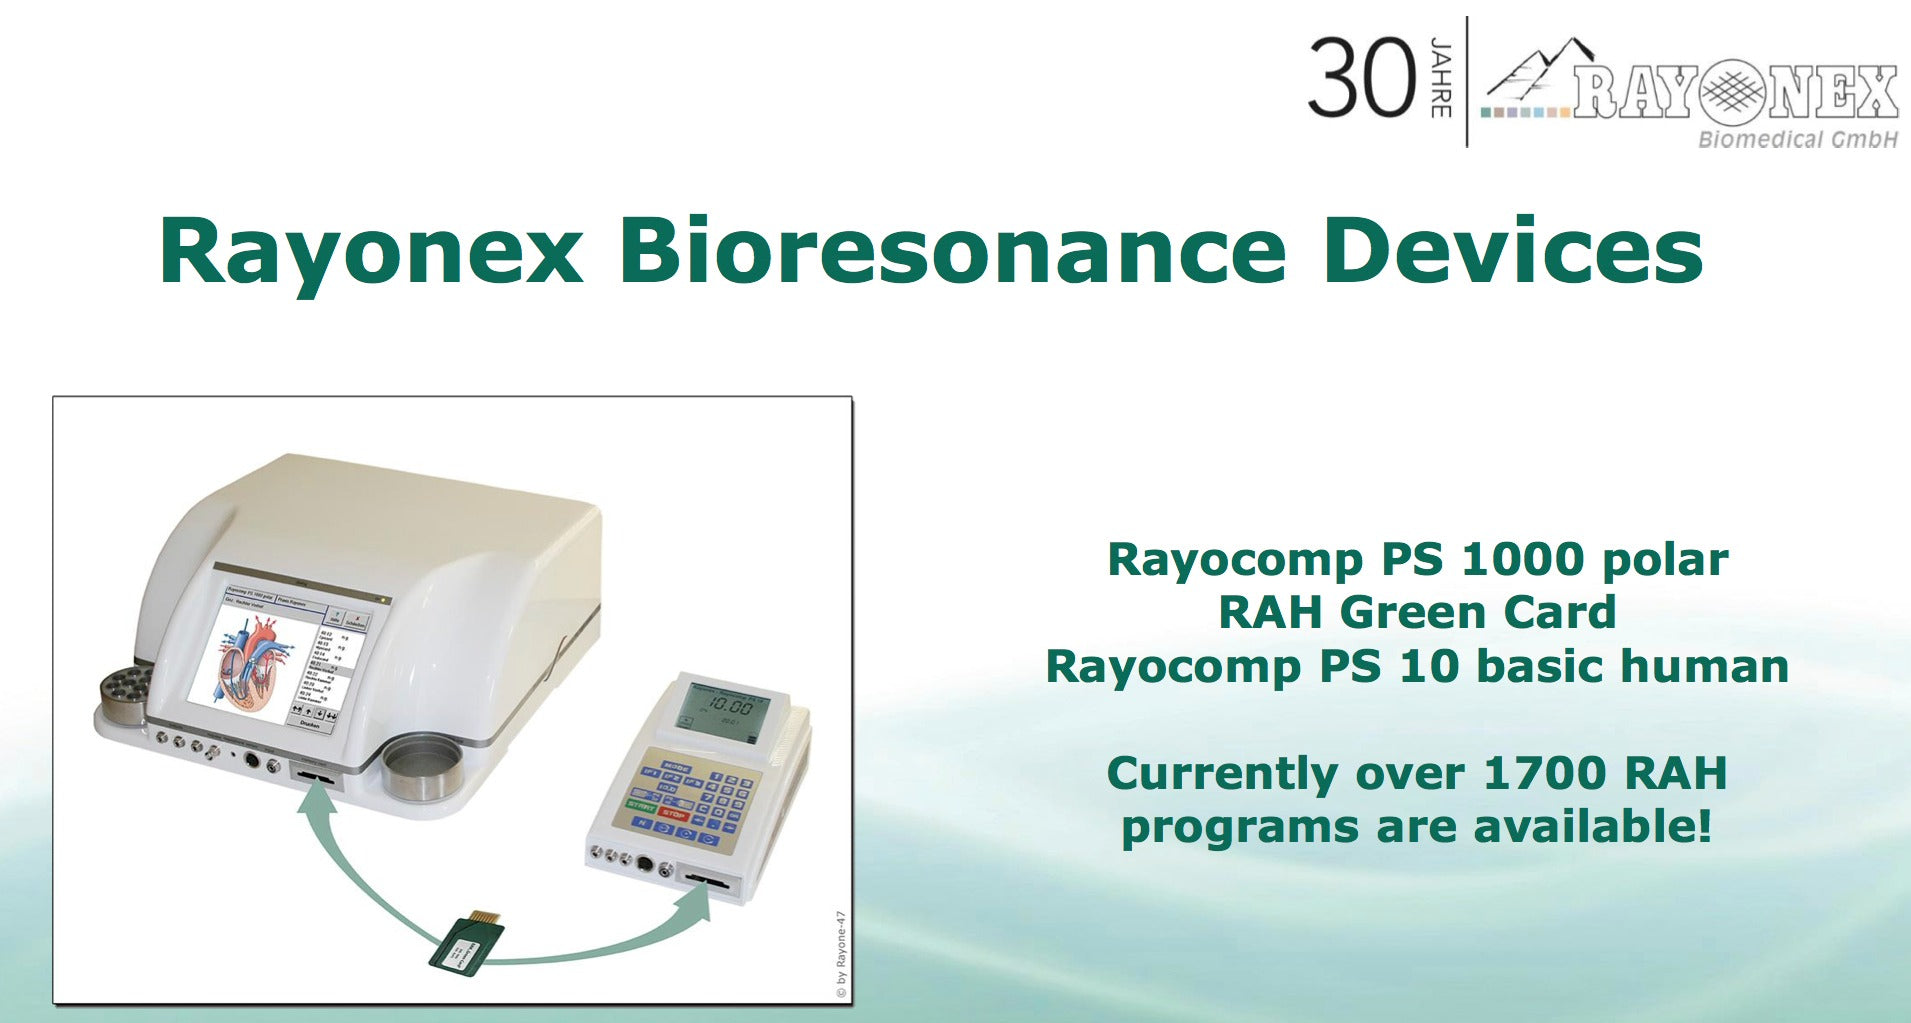 Rayonex Bioresonance Devices - Rayocomp PS1000 Polar